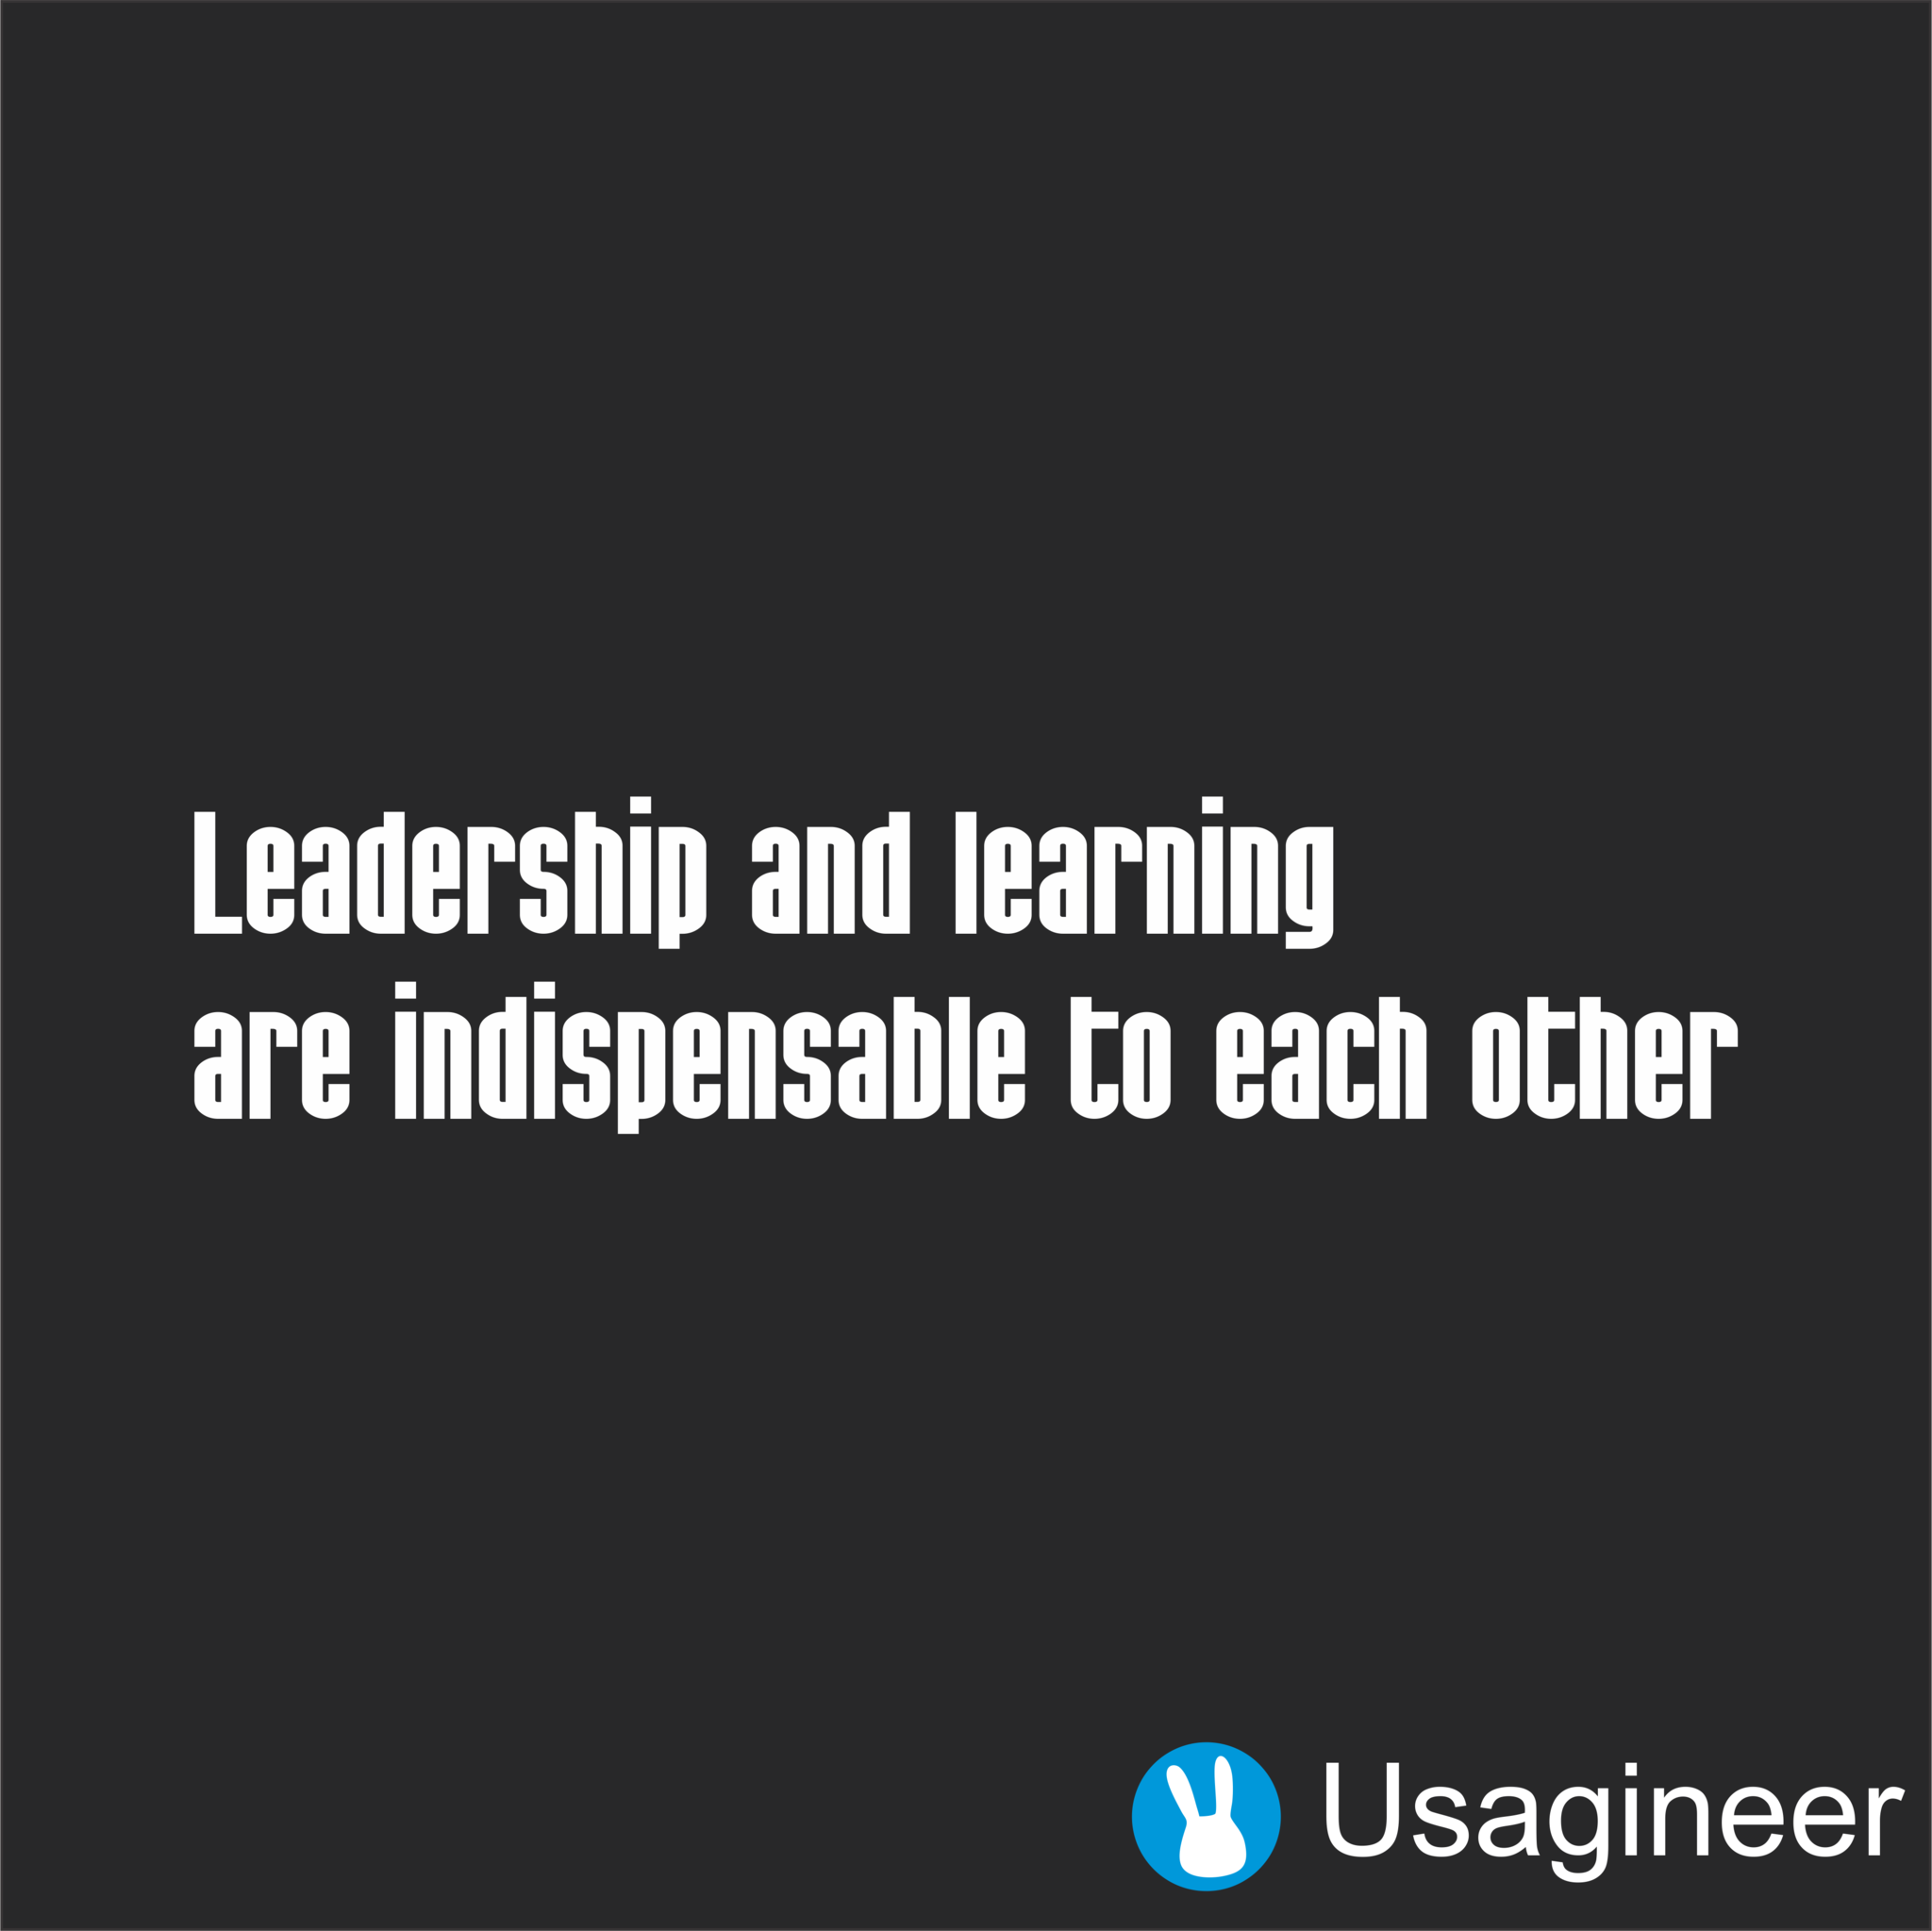 LEADERSHIP AND LEARNING ARE INDISPENSABLE TO EACH OTHER QUOTE - Custom vinyl decals quotes   beginning business